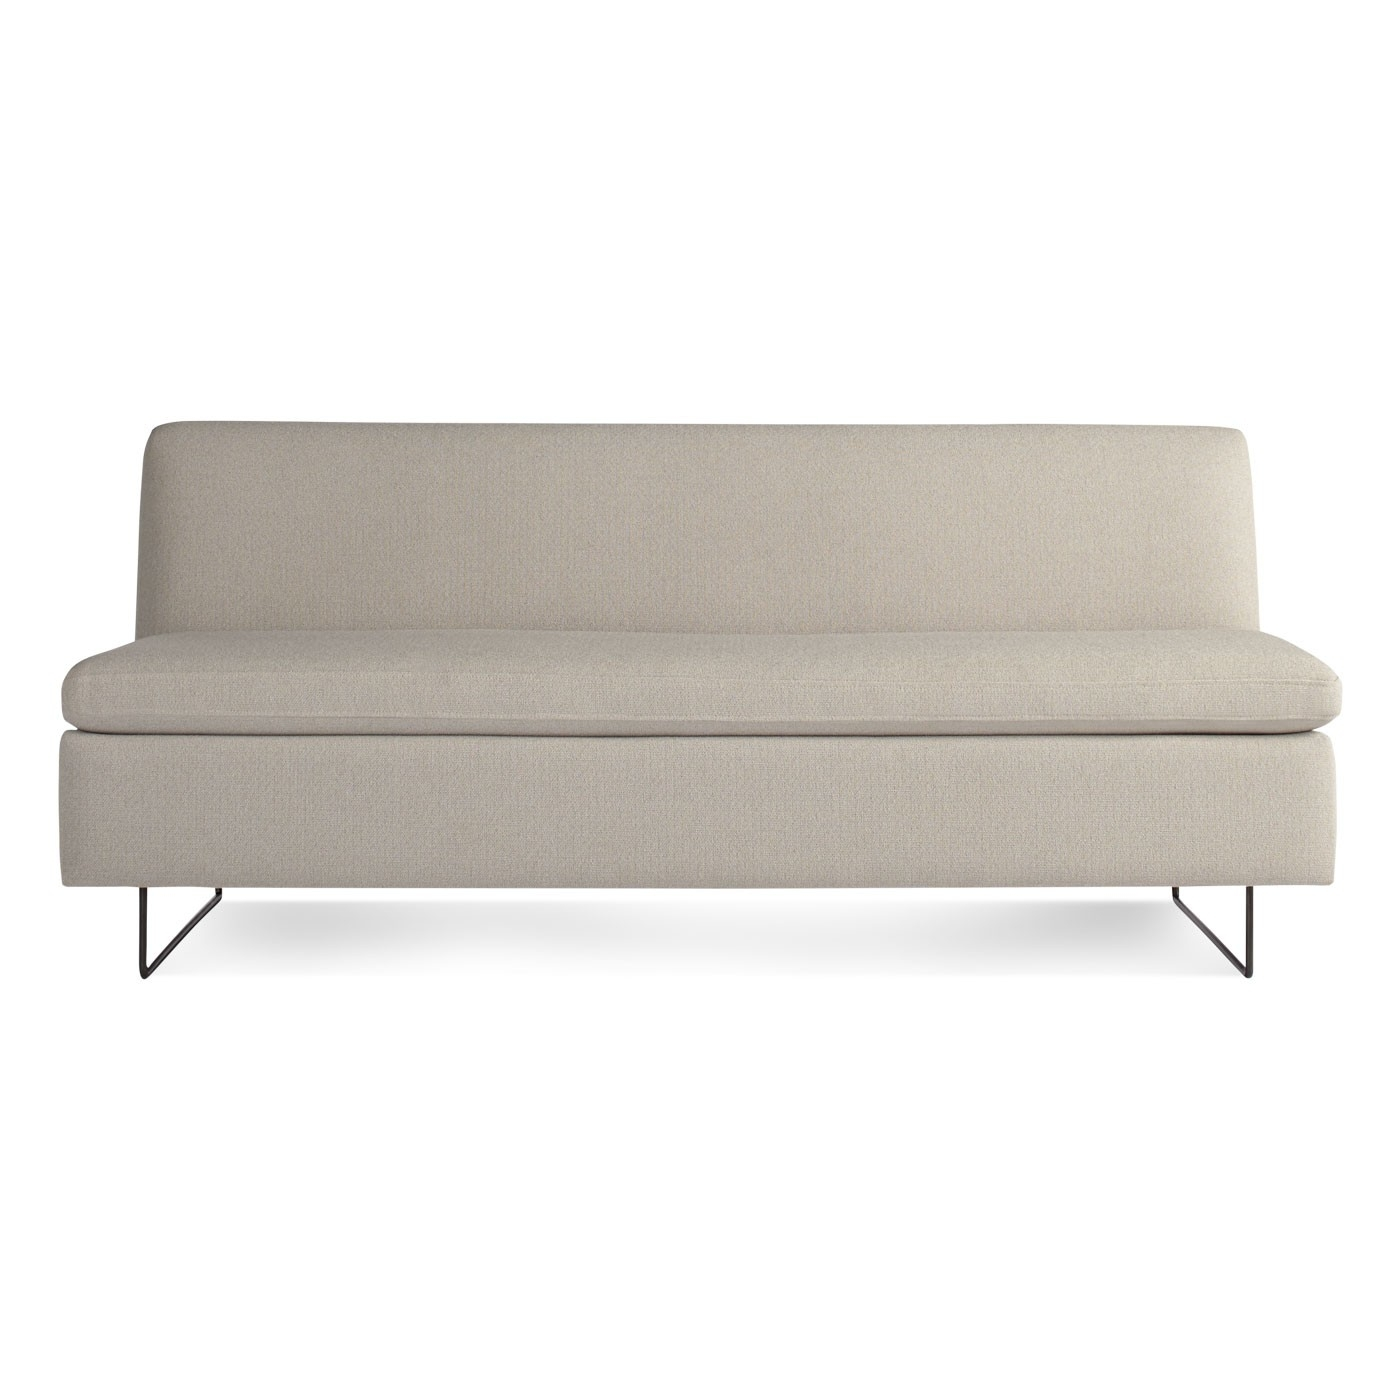 Furniture: Linen Upholstered Armless Sofa For Modern Living Room Design Regarding Small Armless Sofas (View 3 of 10)